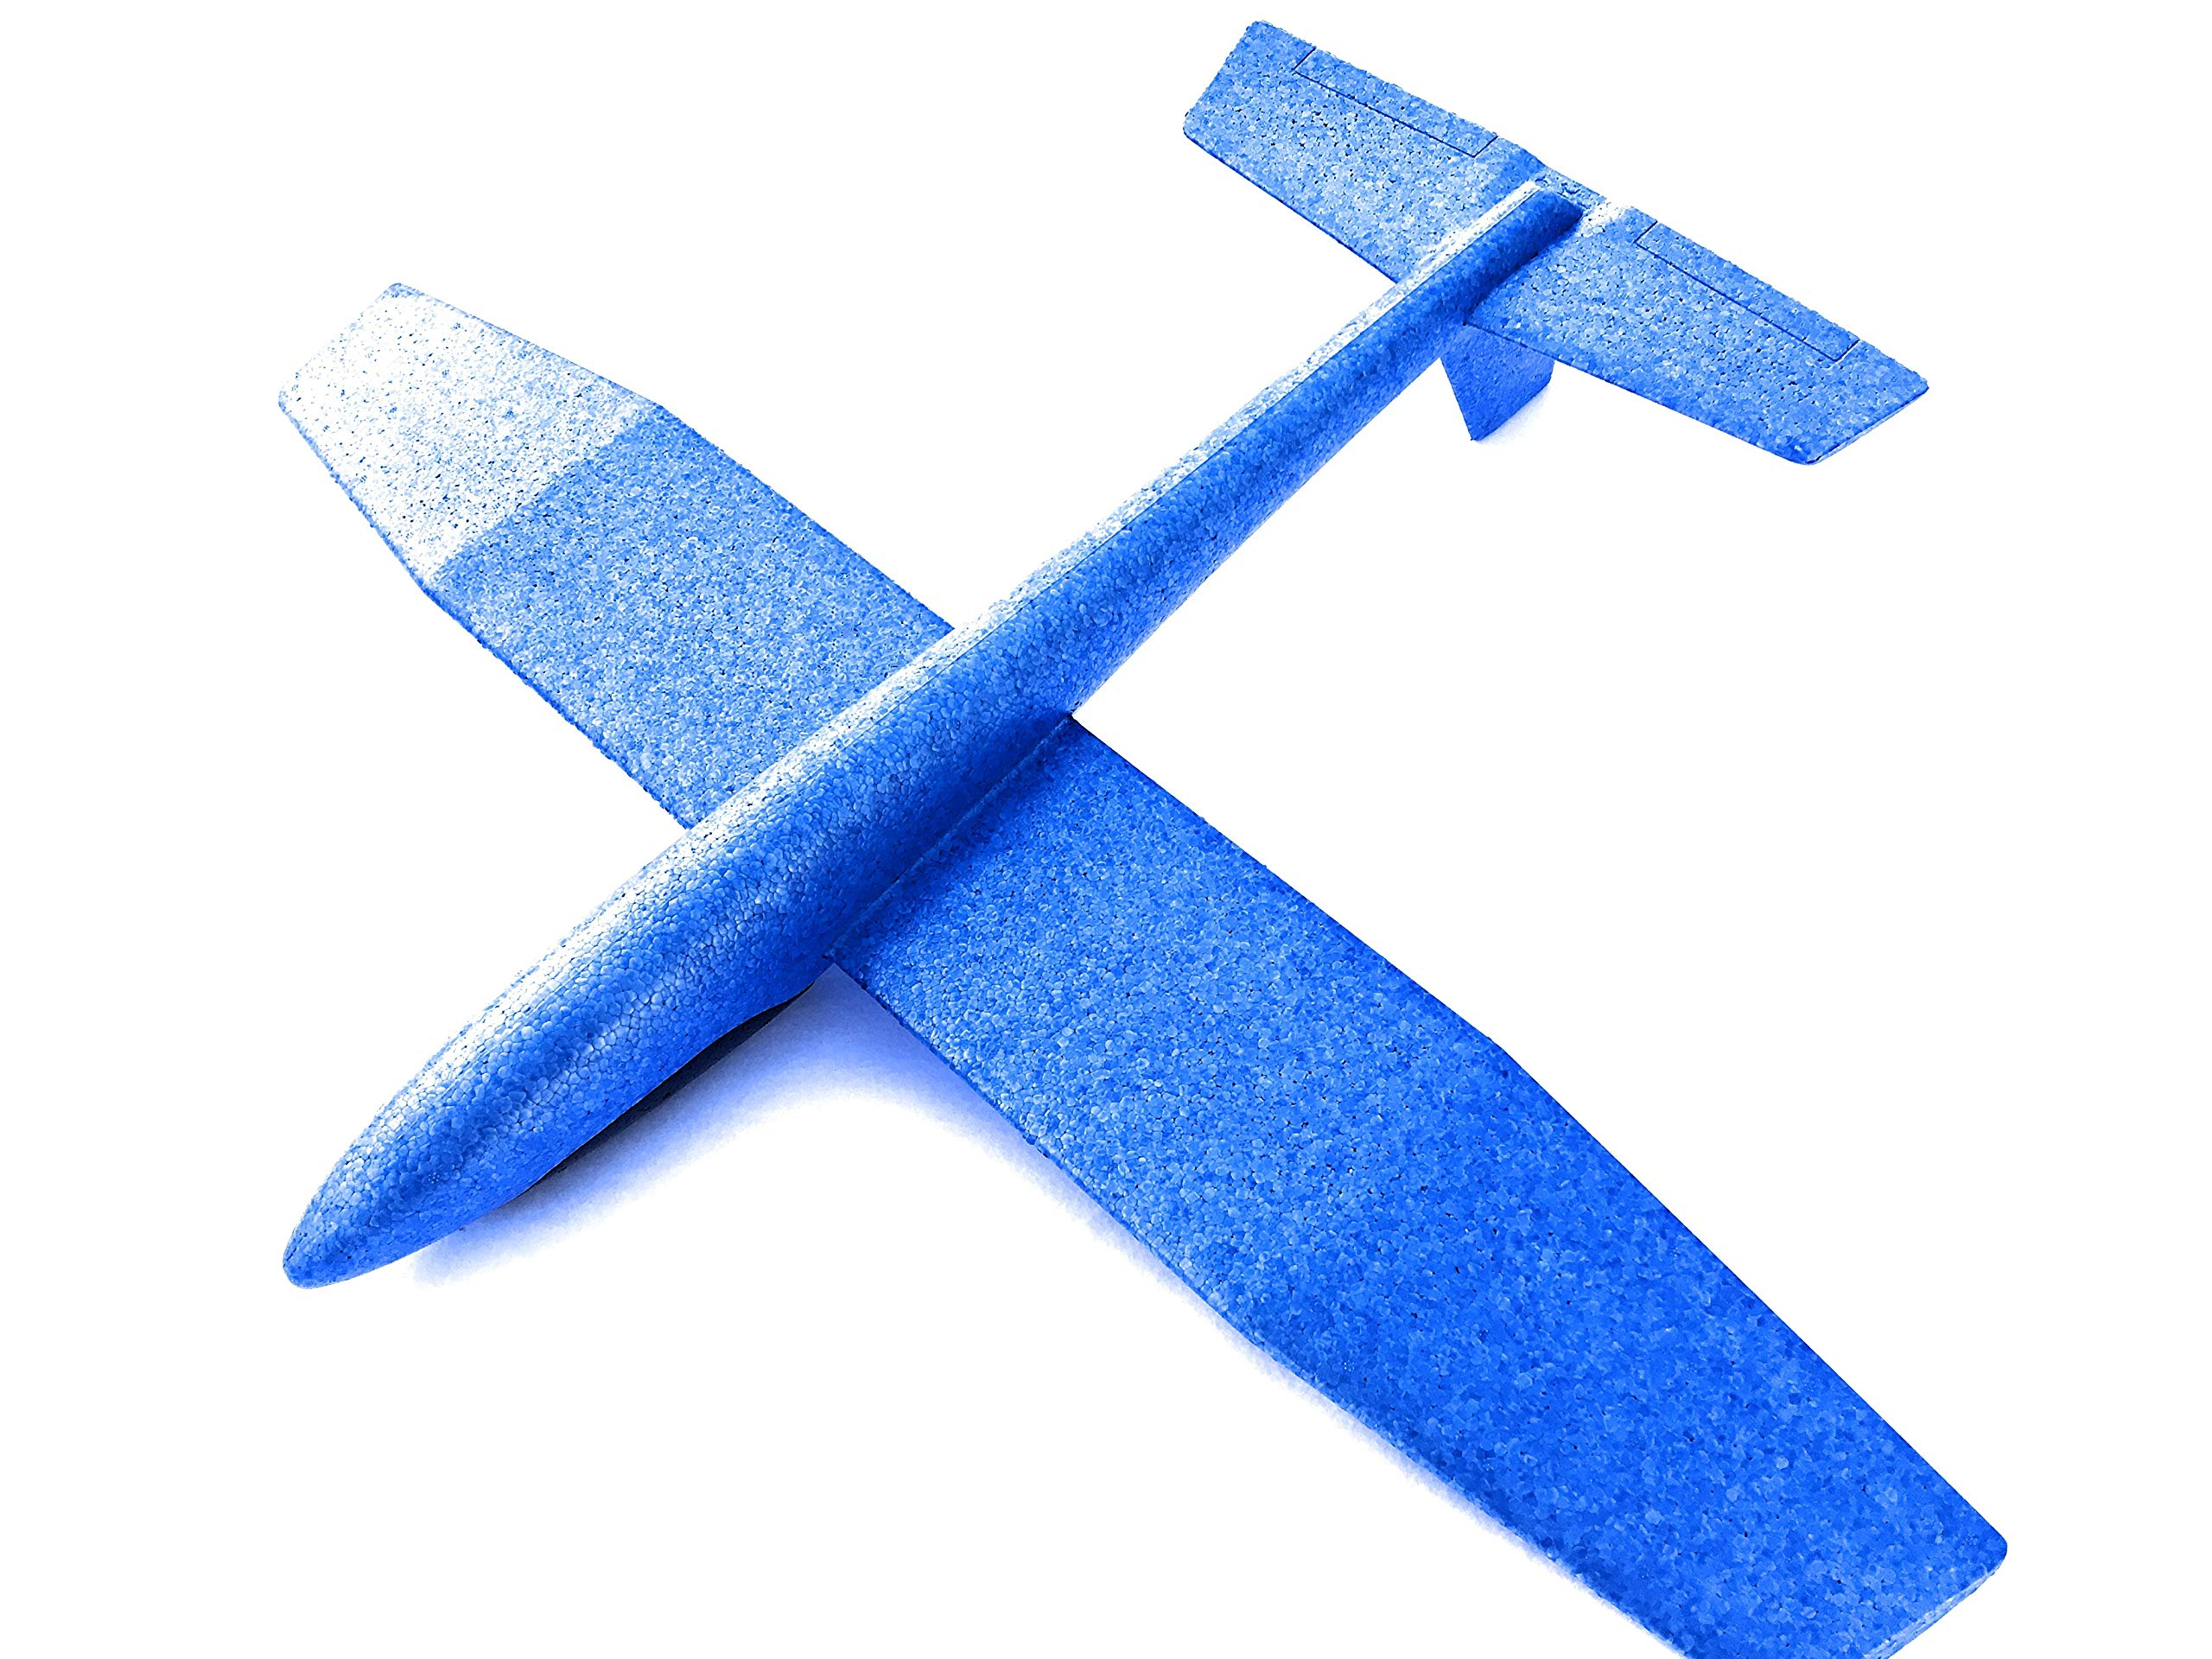 G-I-A-N-T (Almost 3 FEET), Great Flying, Almost Unbreakable, Large Foam Glider Plane. Virgin EPP Foam. Ideal for RC Conversion! Similar to LIDL Gliders Sold Out in Europe! by Daddy's Flyers (Image #4)